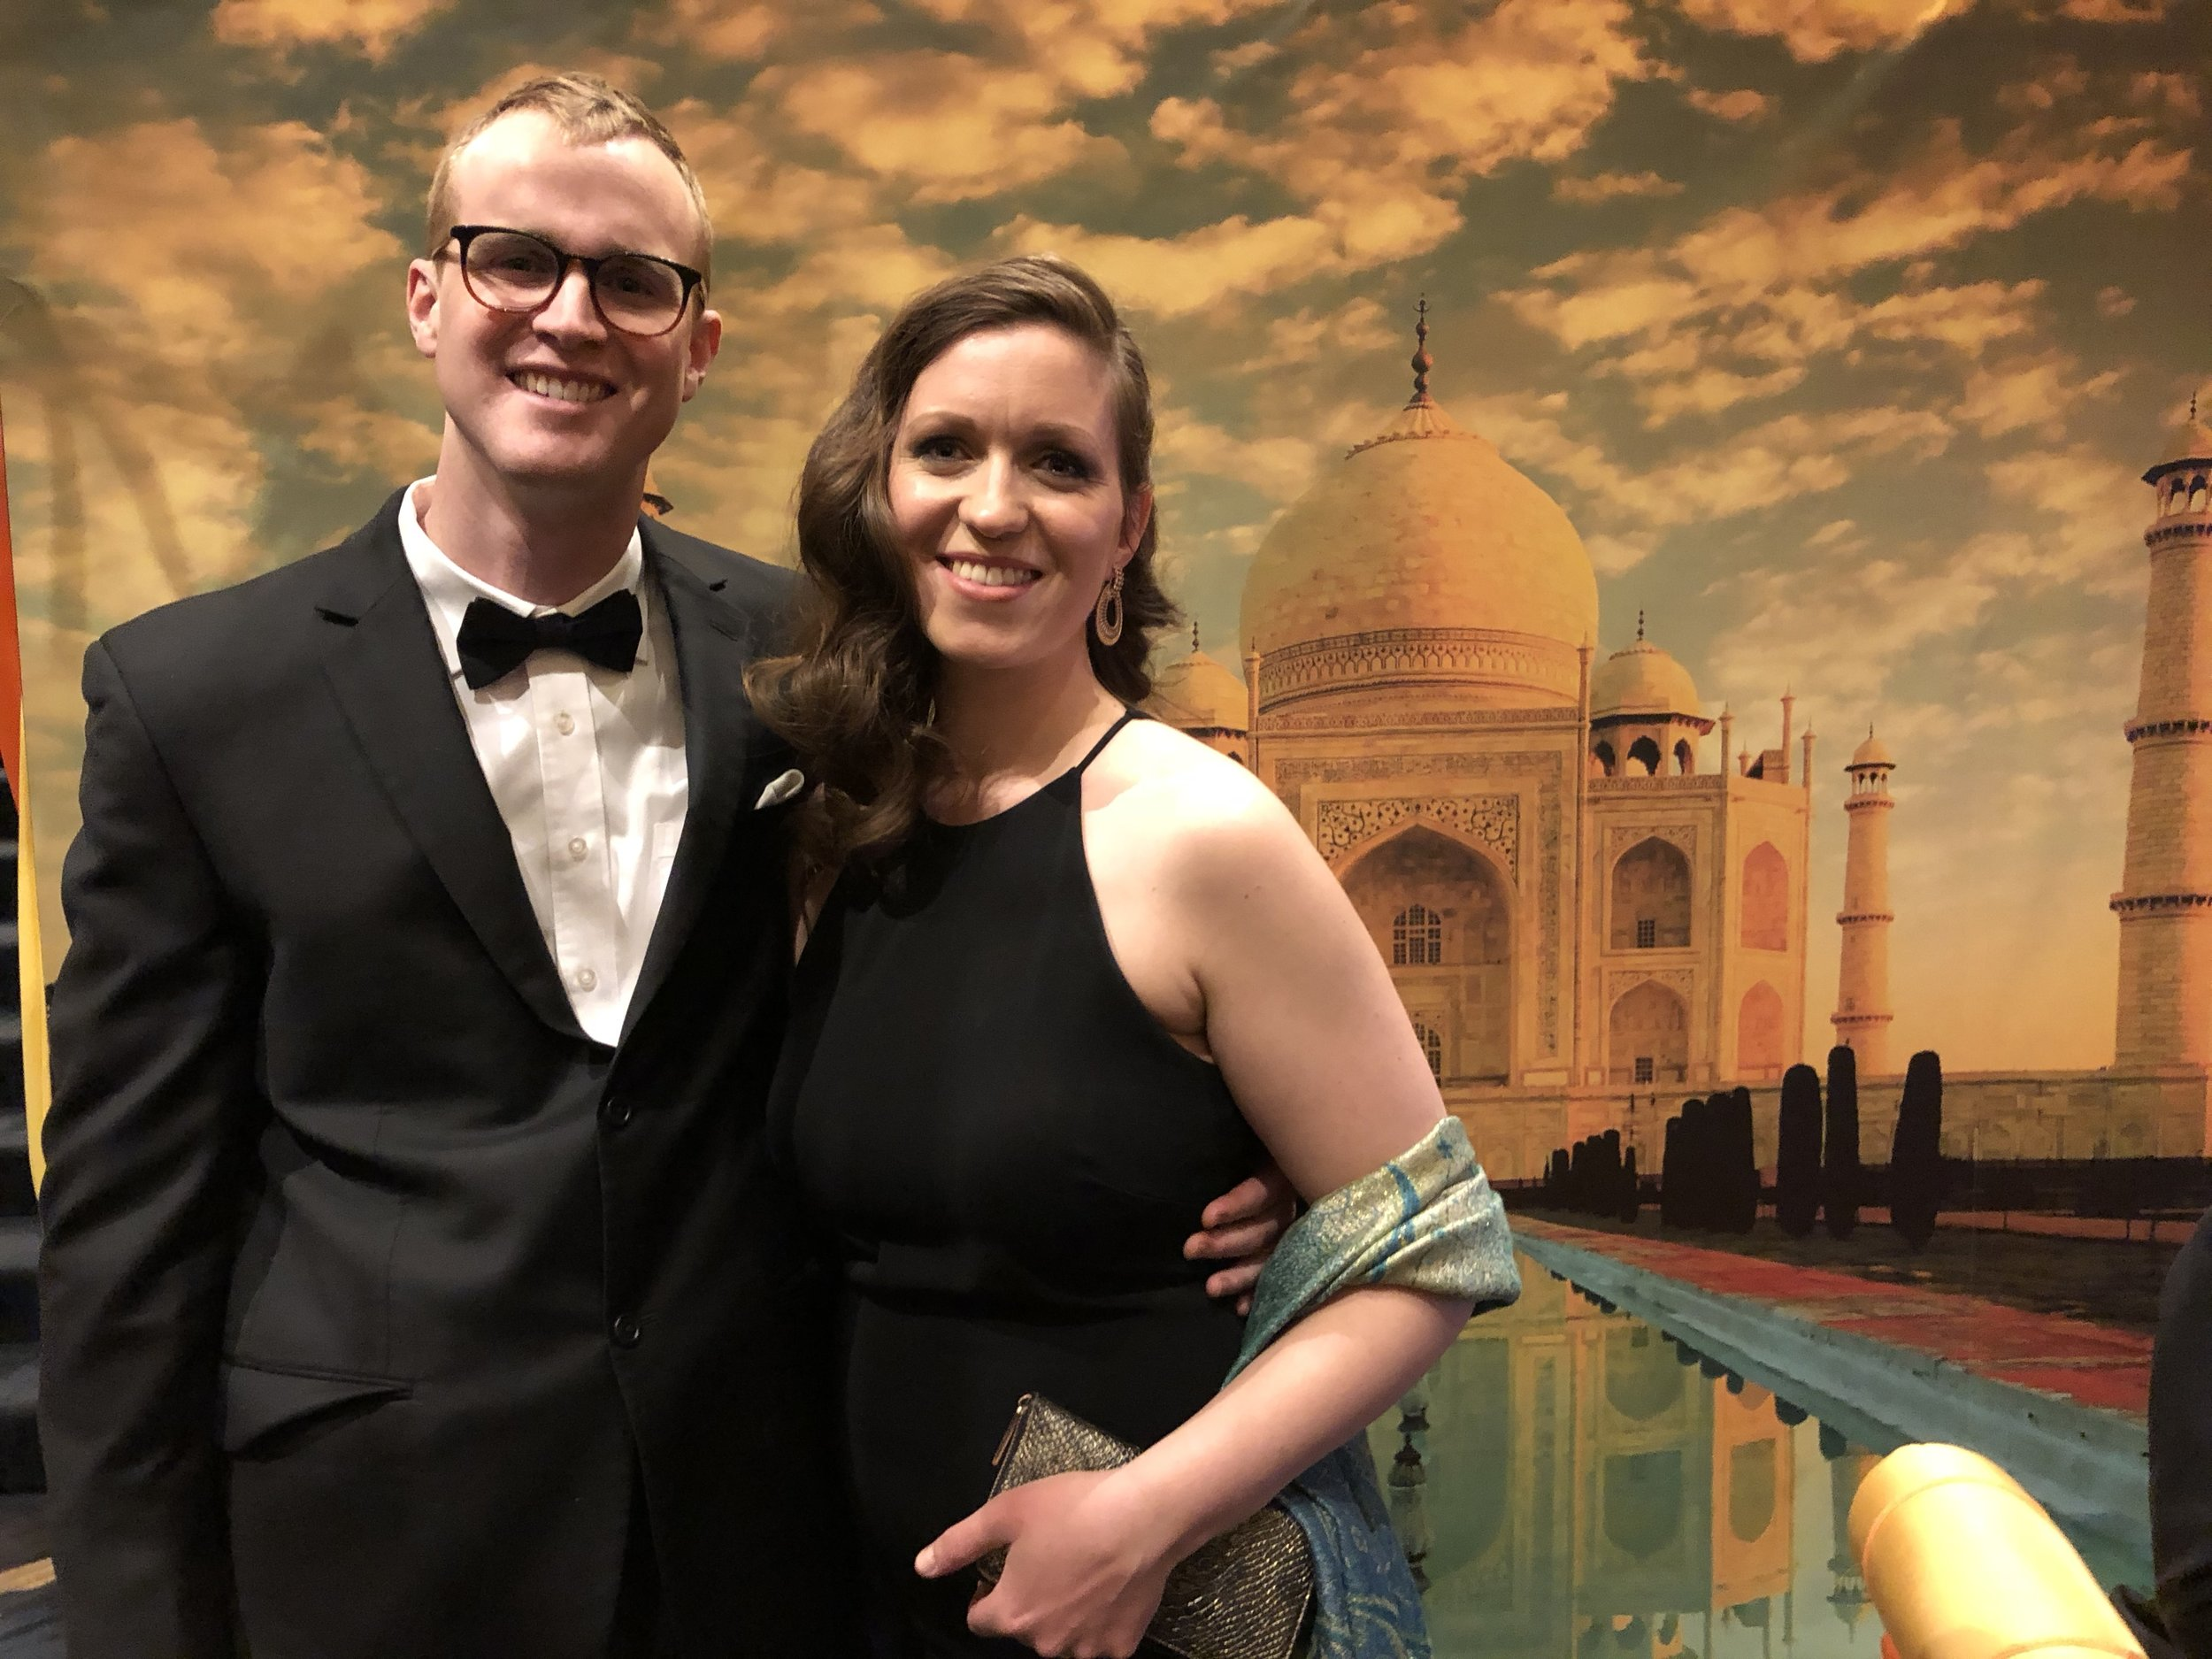 Ina & Will looking snazzy at the Black Diamond Ball -